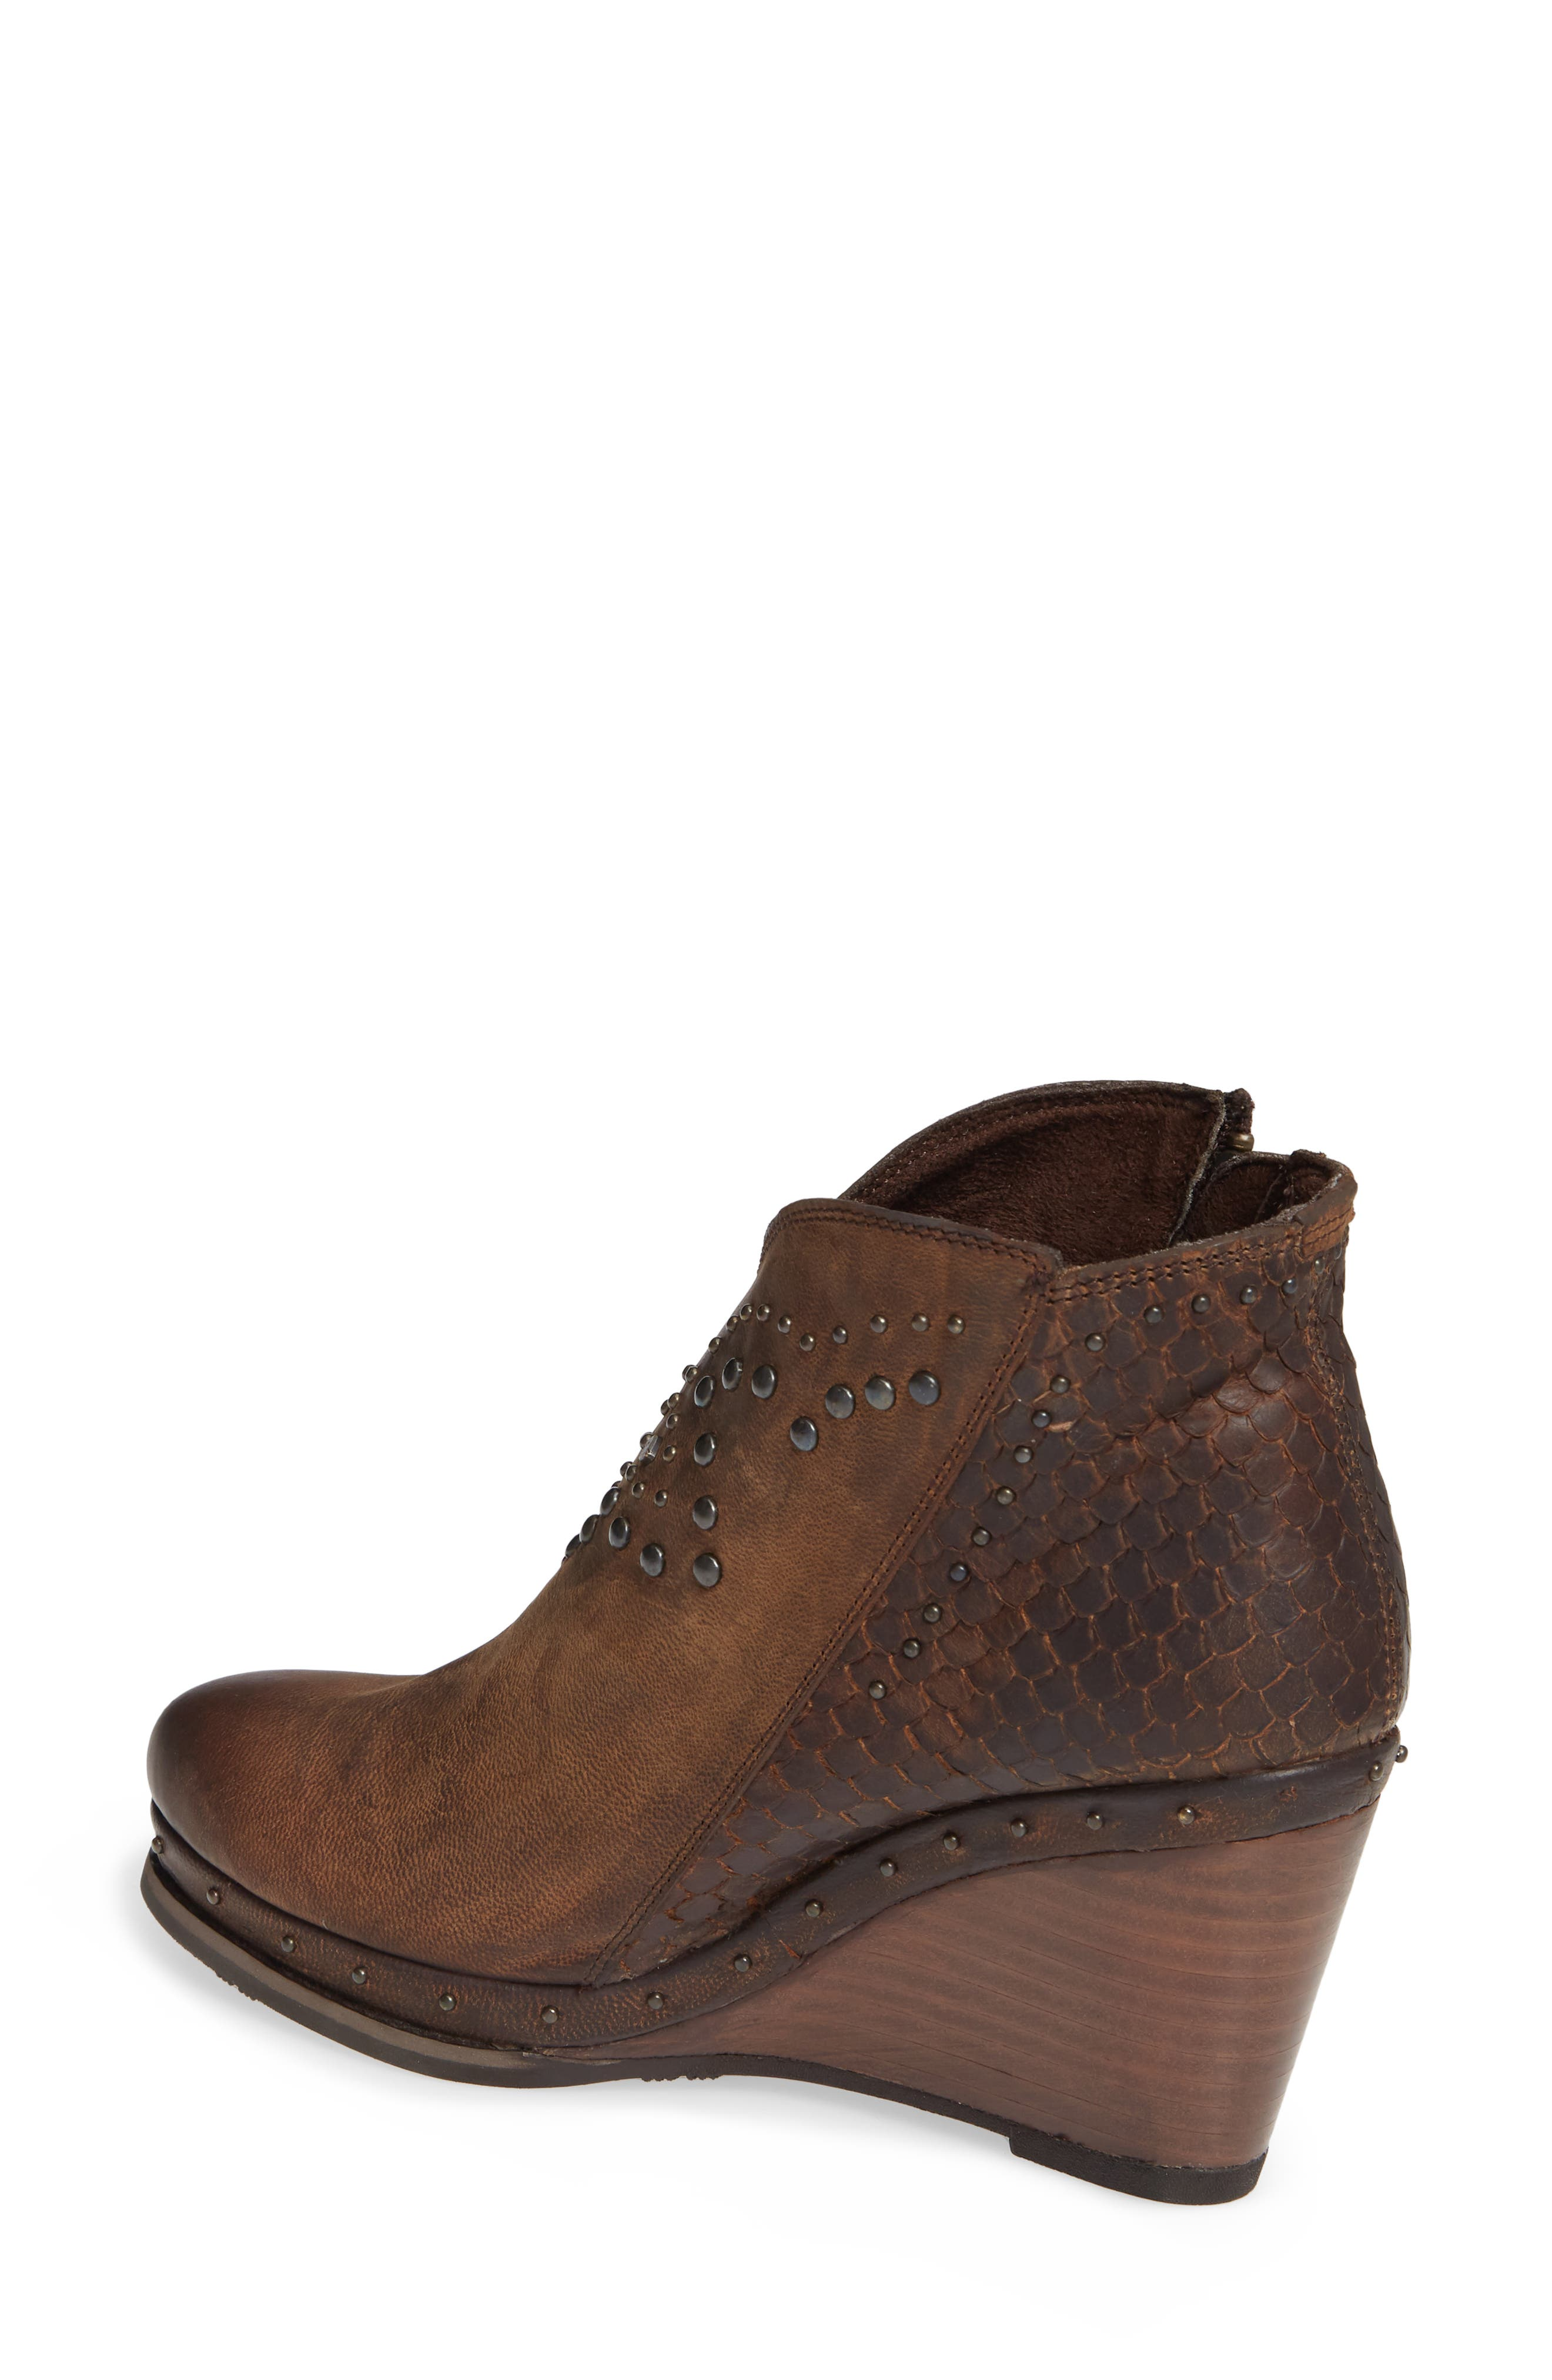 Stax Studded Wedge Bootie,                             Alternate thumbnail 2, color,                             RUSSET DIAMONDBACK TAN LEATHER